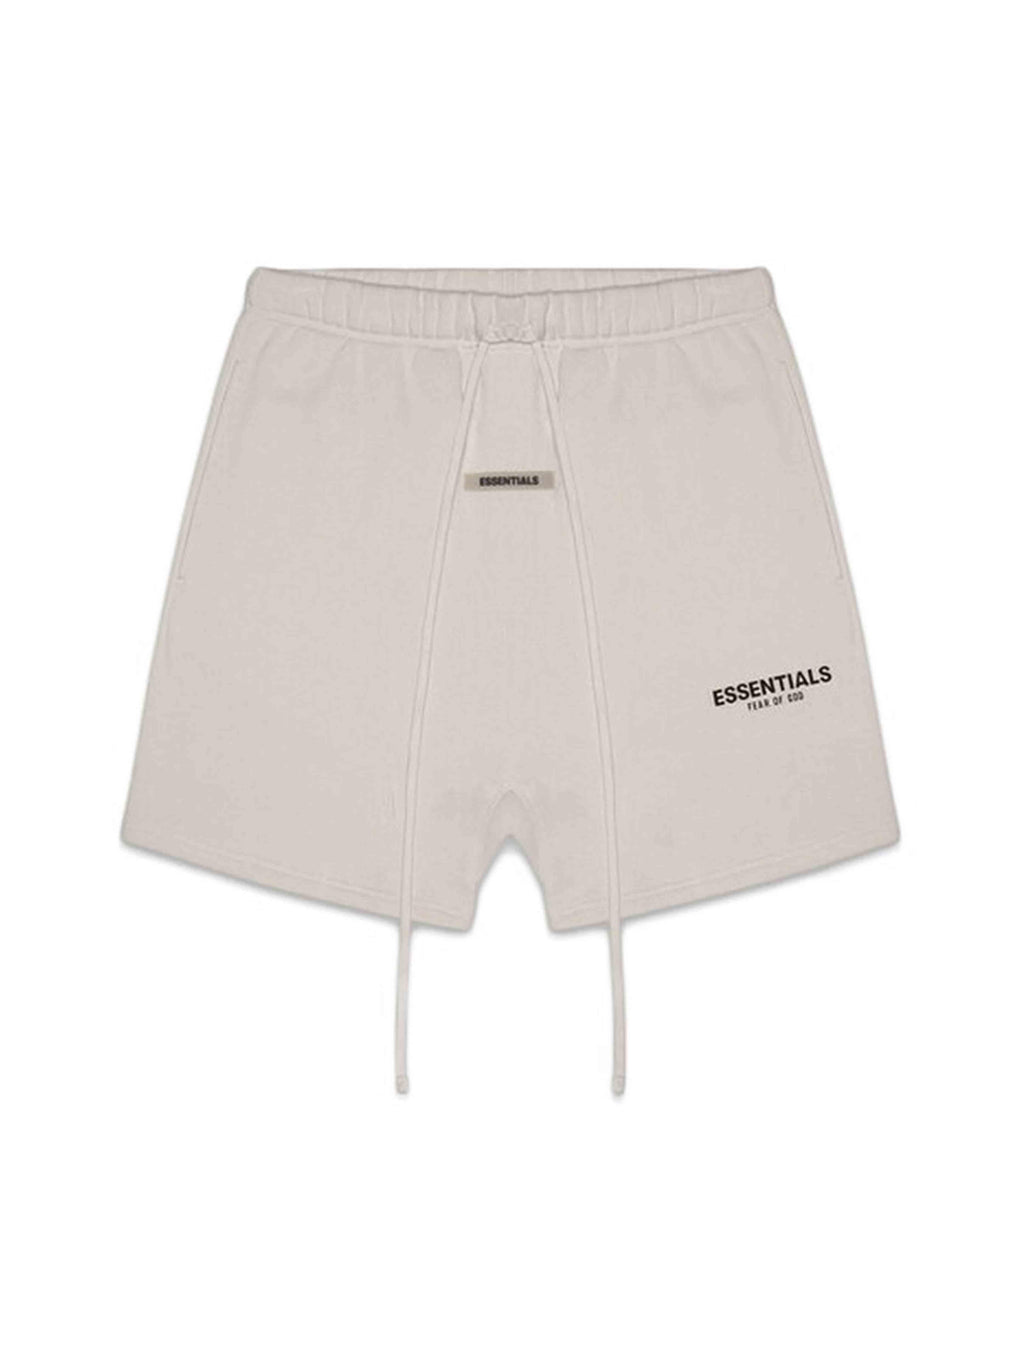 FOG ESSENTIALS Fleece Shorts Tan - PRIOR